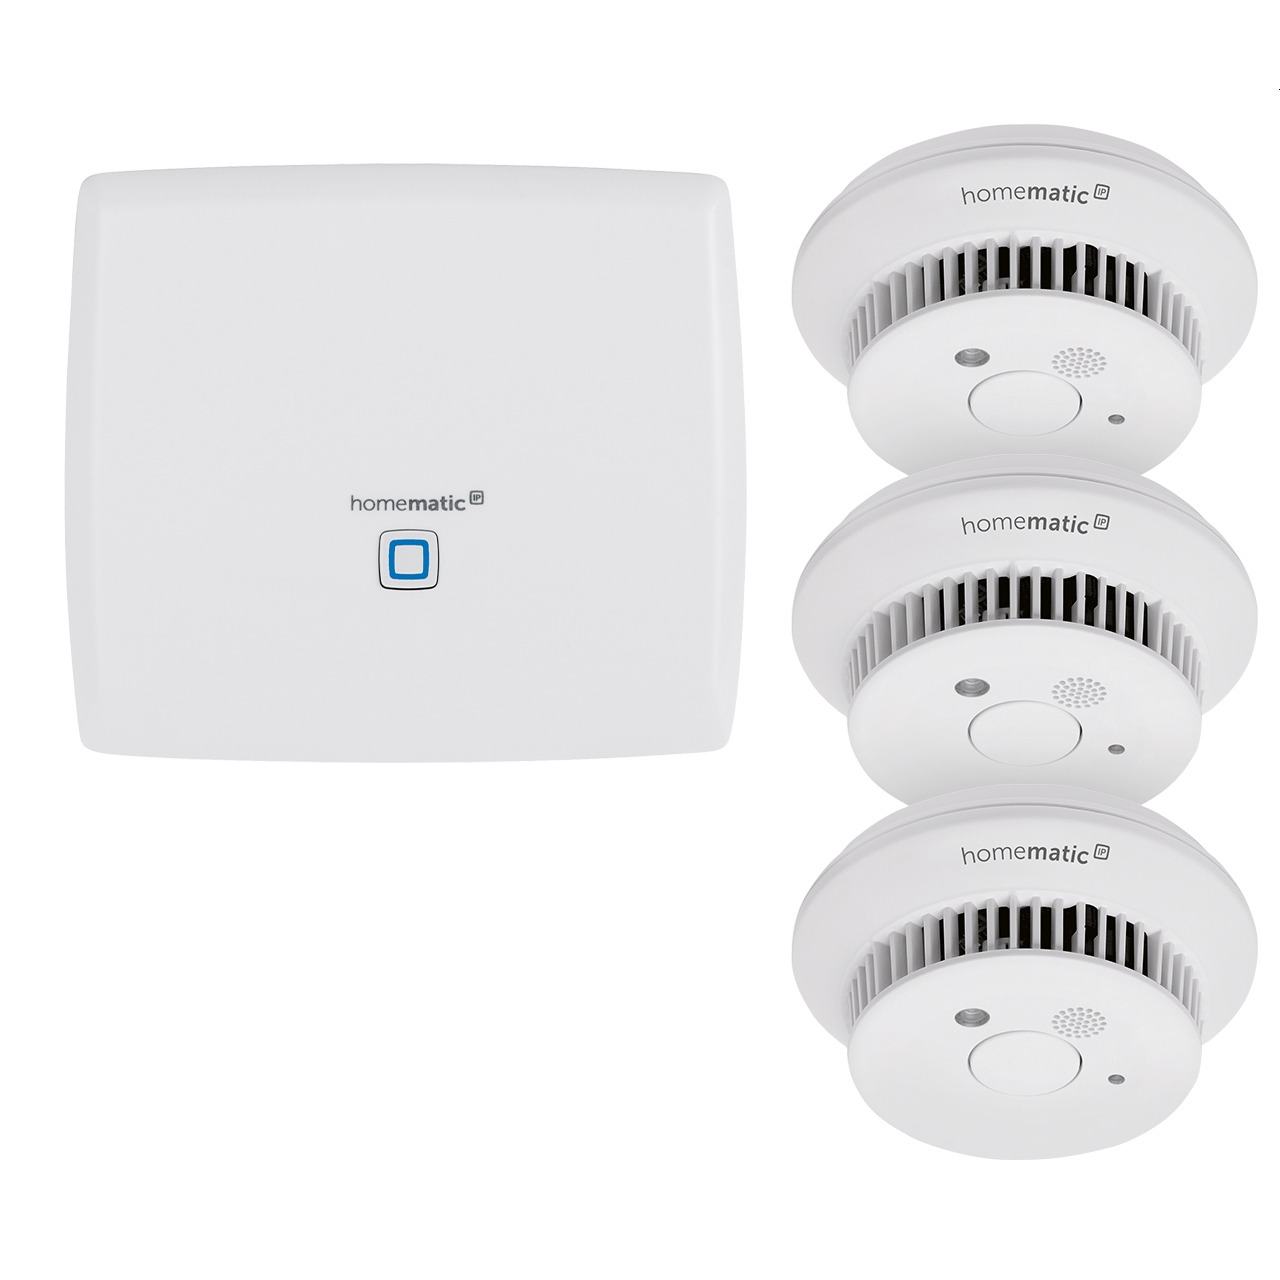 Homematic IP Starter Set mit Smart Home Zentrale CCU3 und 3x Rauchwarnmelder HmIP-SWSD